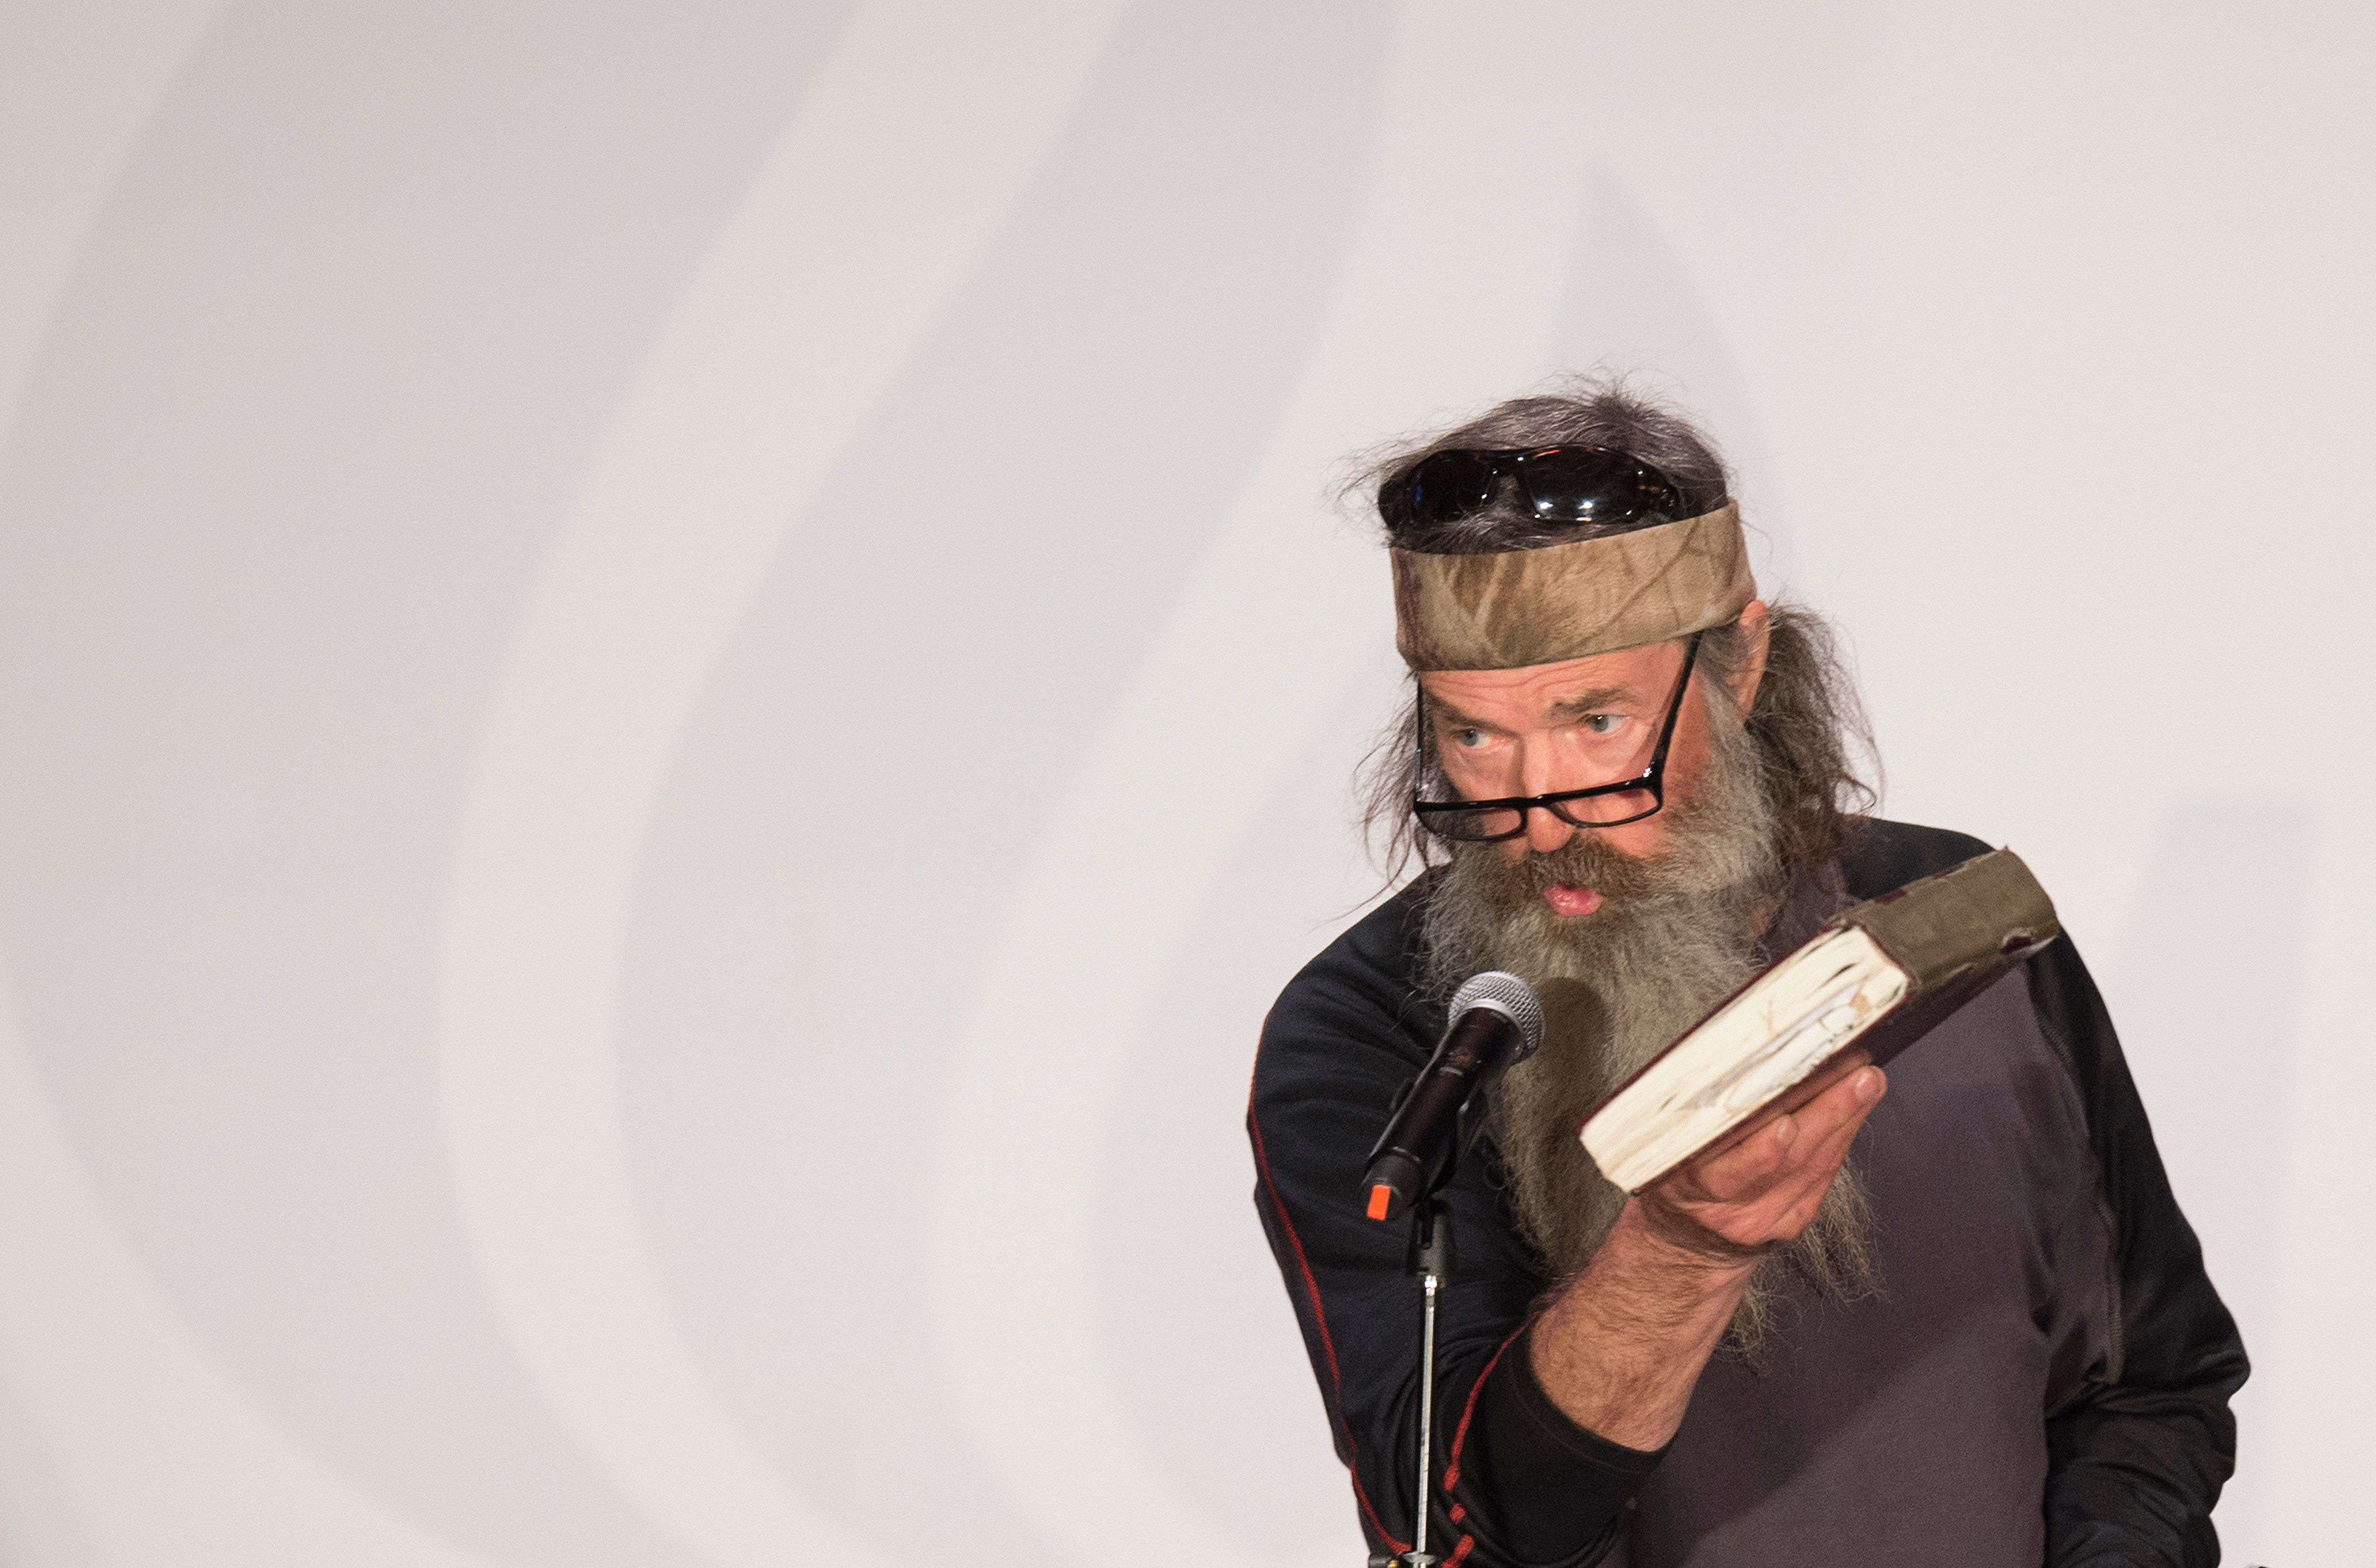 Reality TV's Duck Dynasty star Phil Robertson holds up his Bible during a campaign rally for Republican presidential candidate Ted Cruz in Charleston, South Carolina, February 19, 2016.  / AFP / JIM WATSON        (Photo credit should read JIM WATSON/AFP/Getty Images)